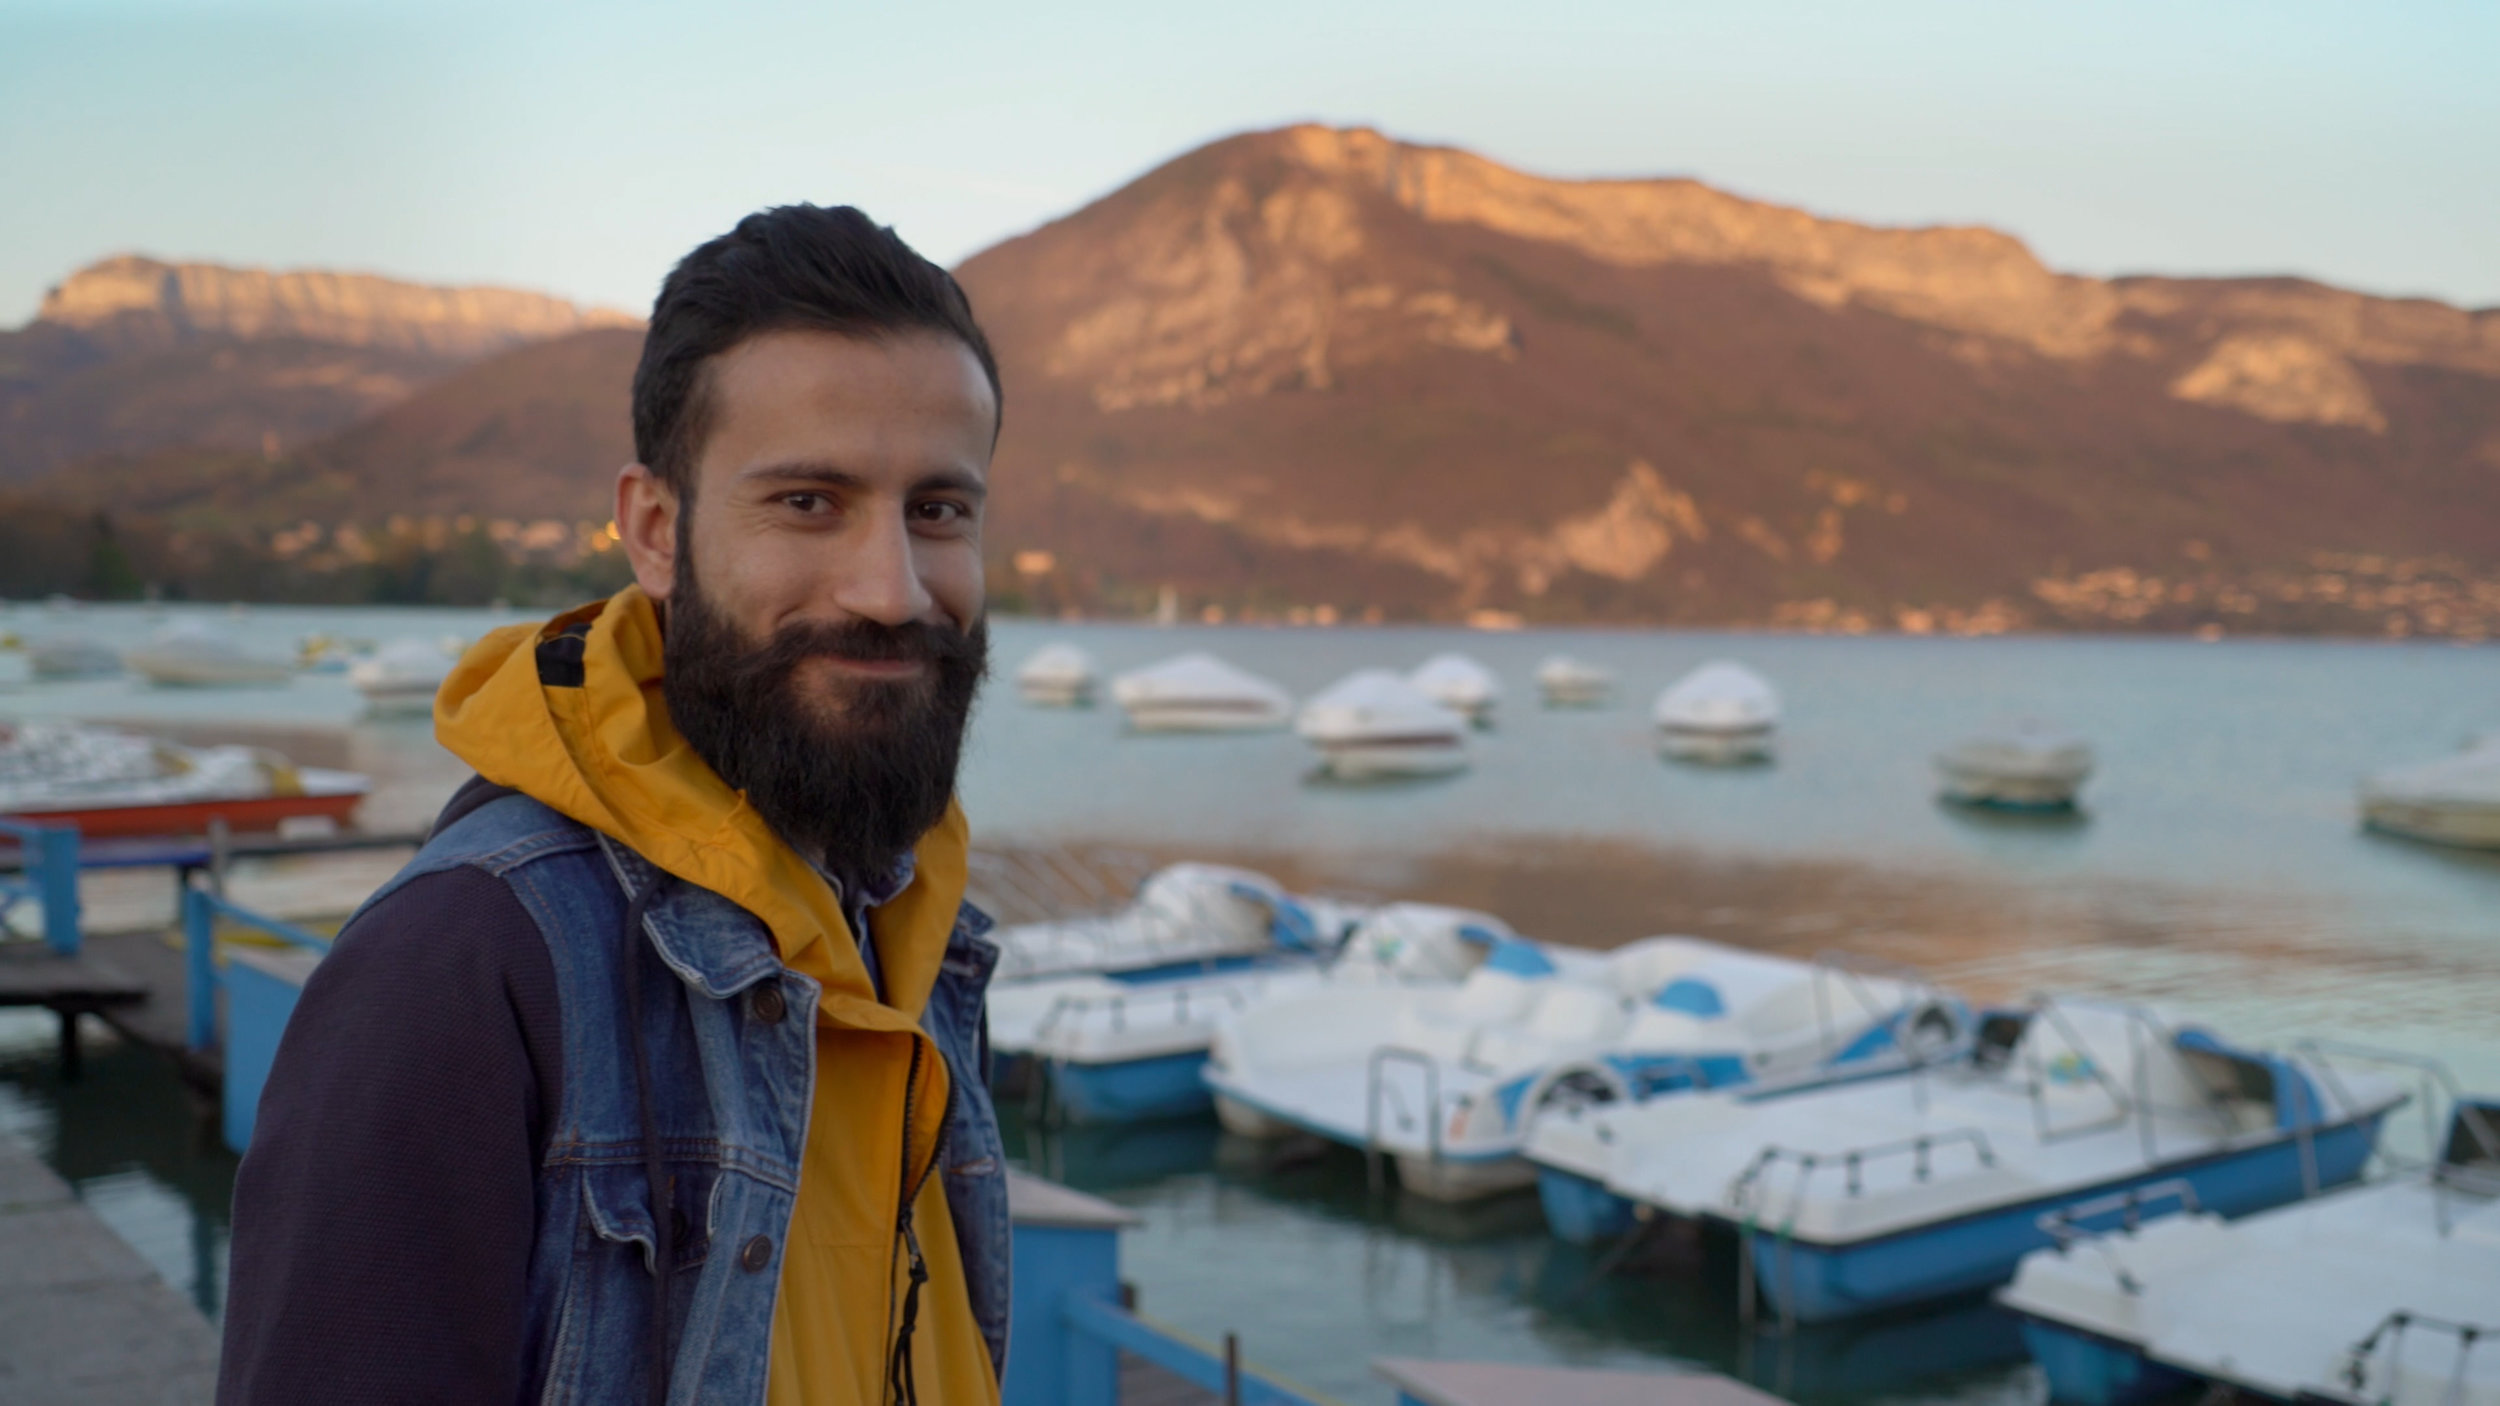 Unbroken Paradise - Ramman Ismail smiling in Annecy, France, where part of the film was shot.